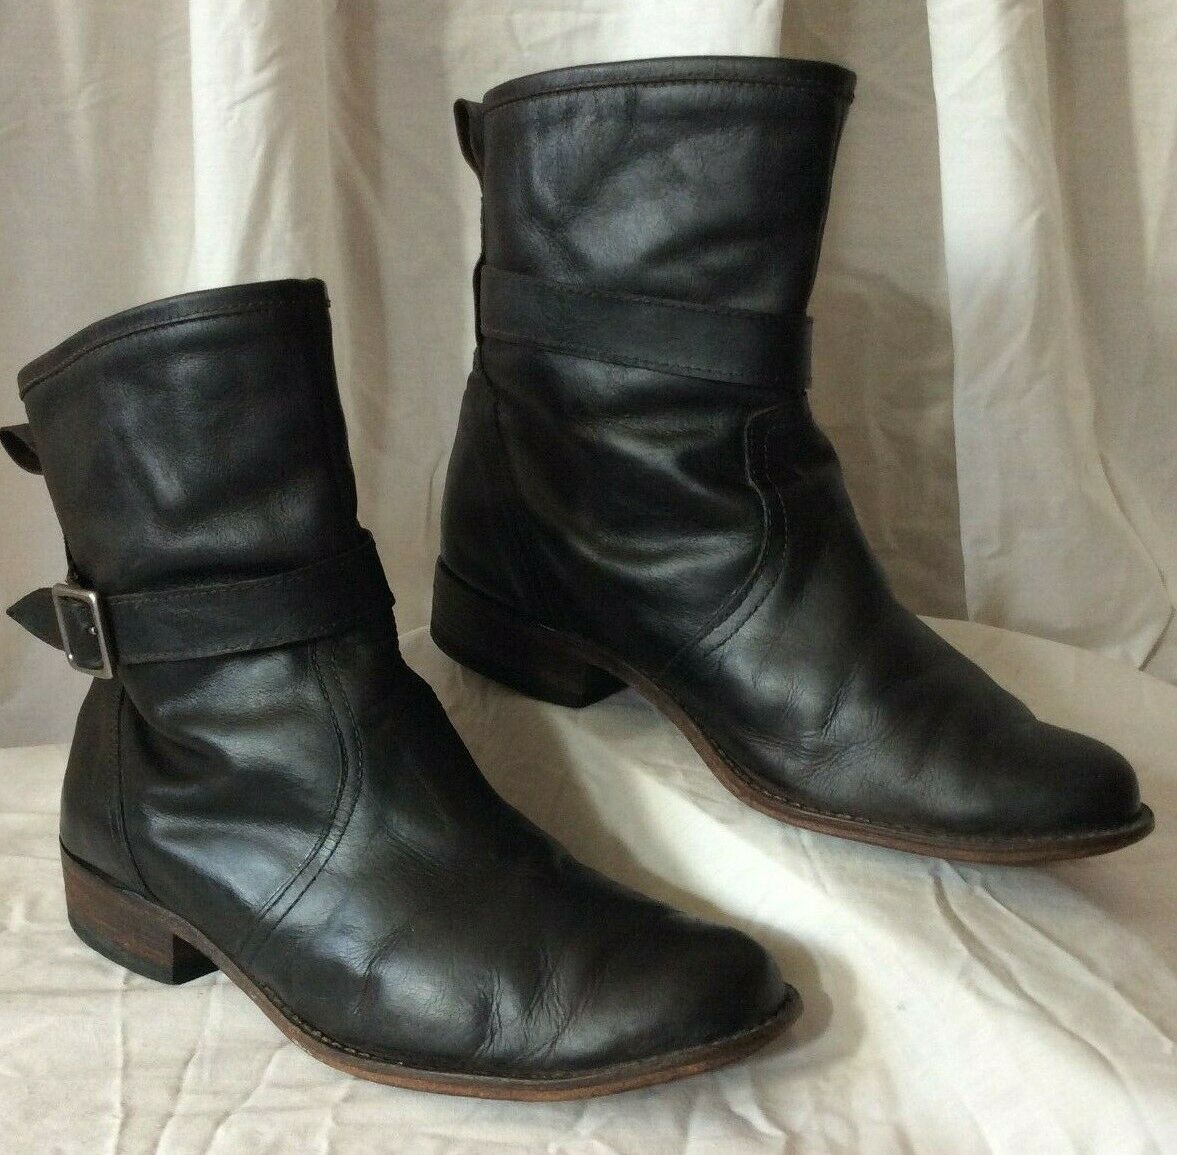 Charlie 1 Horse Cowboy Western Motorcycle Riding Ankle Boots - Women's 7.5B VGUC